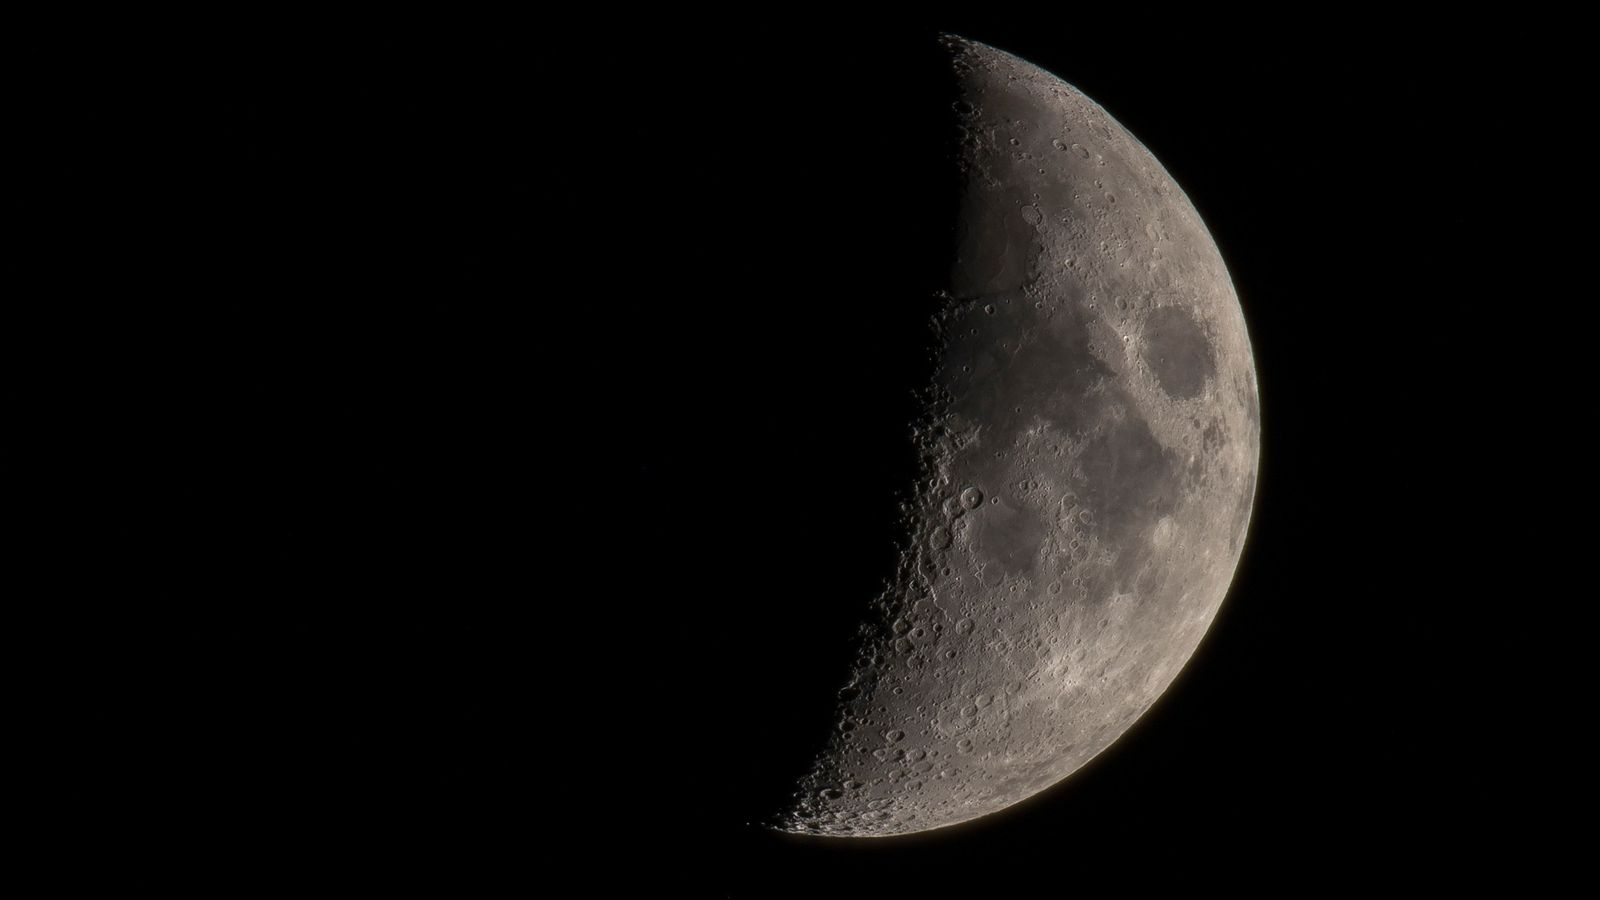 A view of the moon through a telescope showcases the many well-preserved craters and dark lava ...